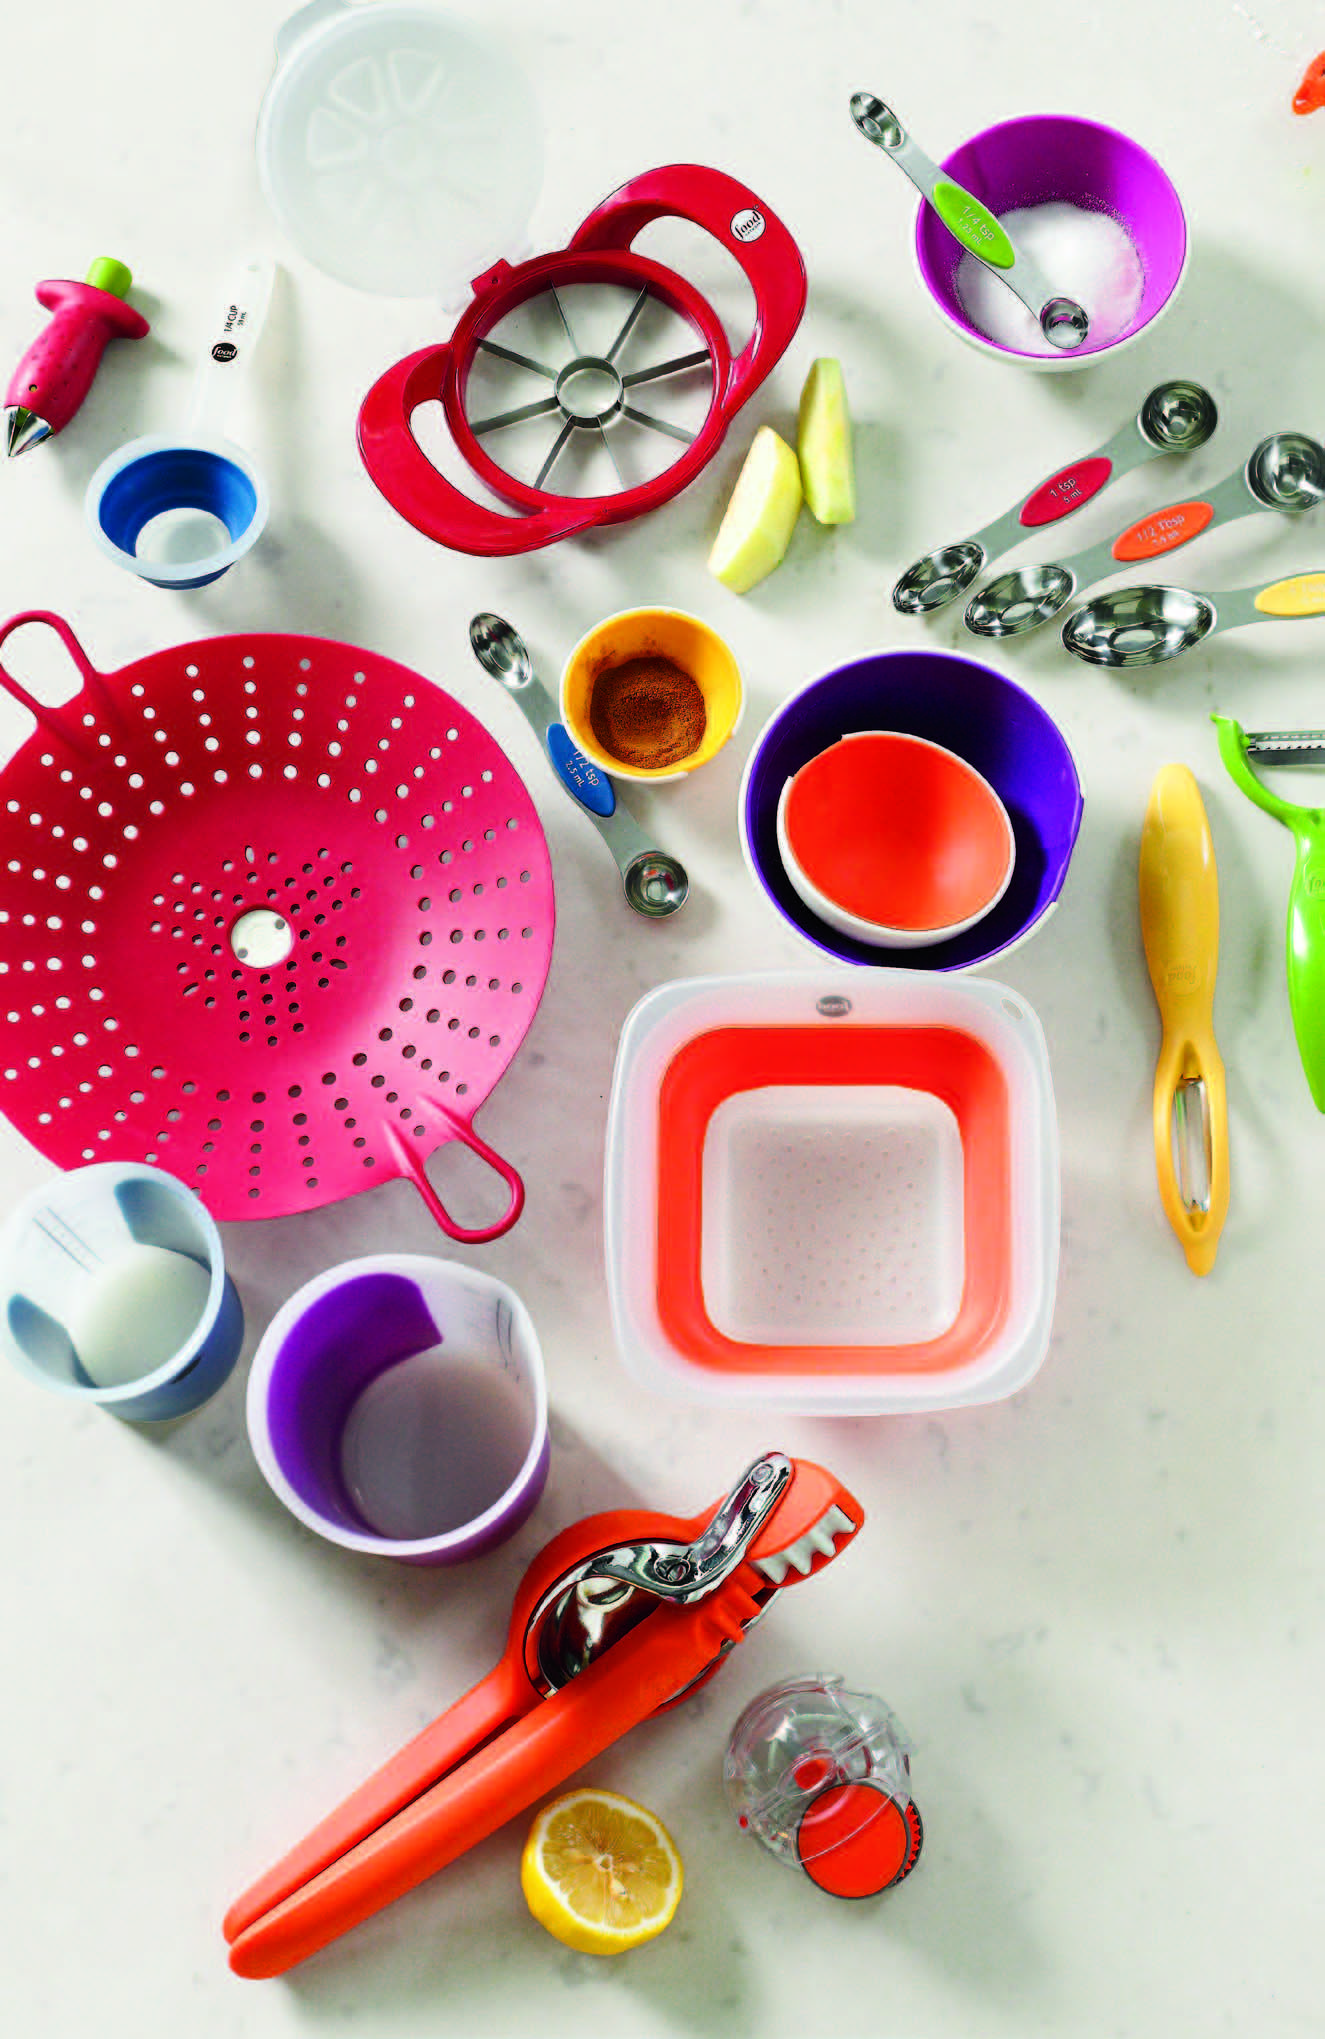 Kohls Wedding Registry.Colorful Gadgets From Kohl S Wedding Registry Wedding Ideas